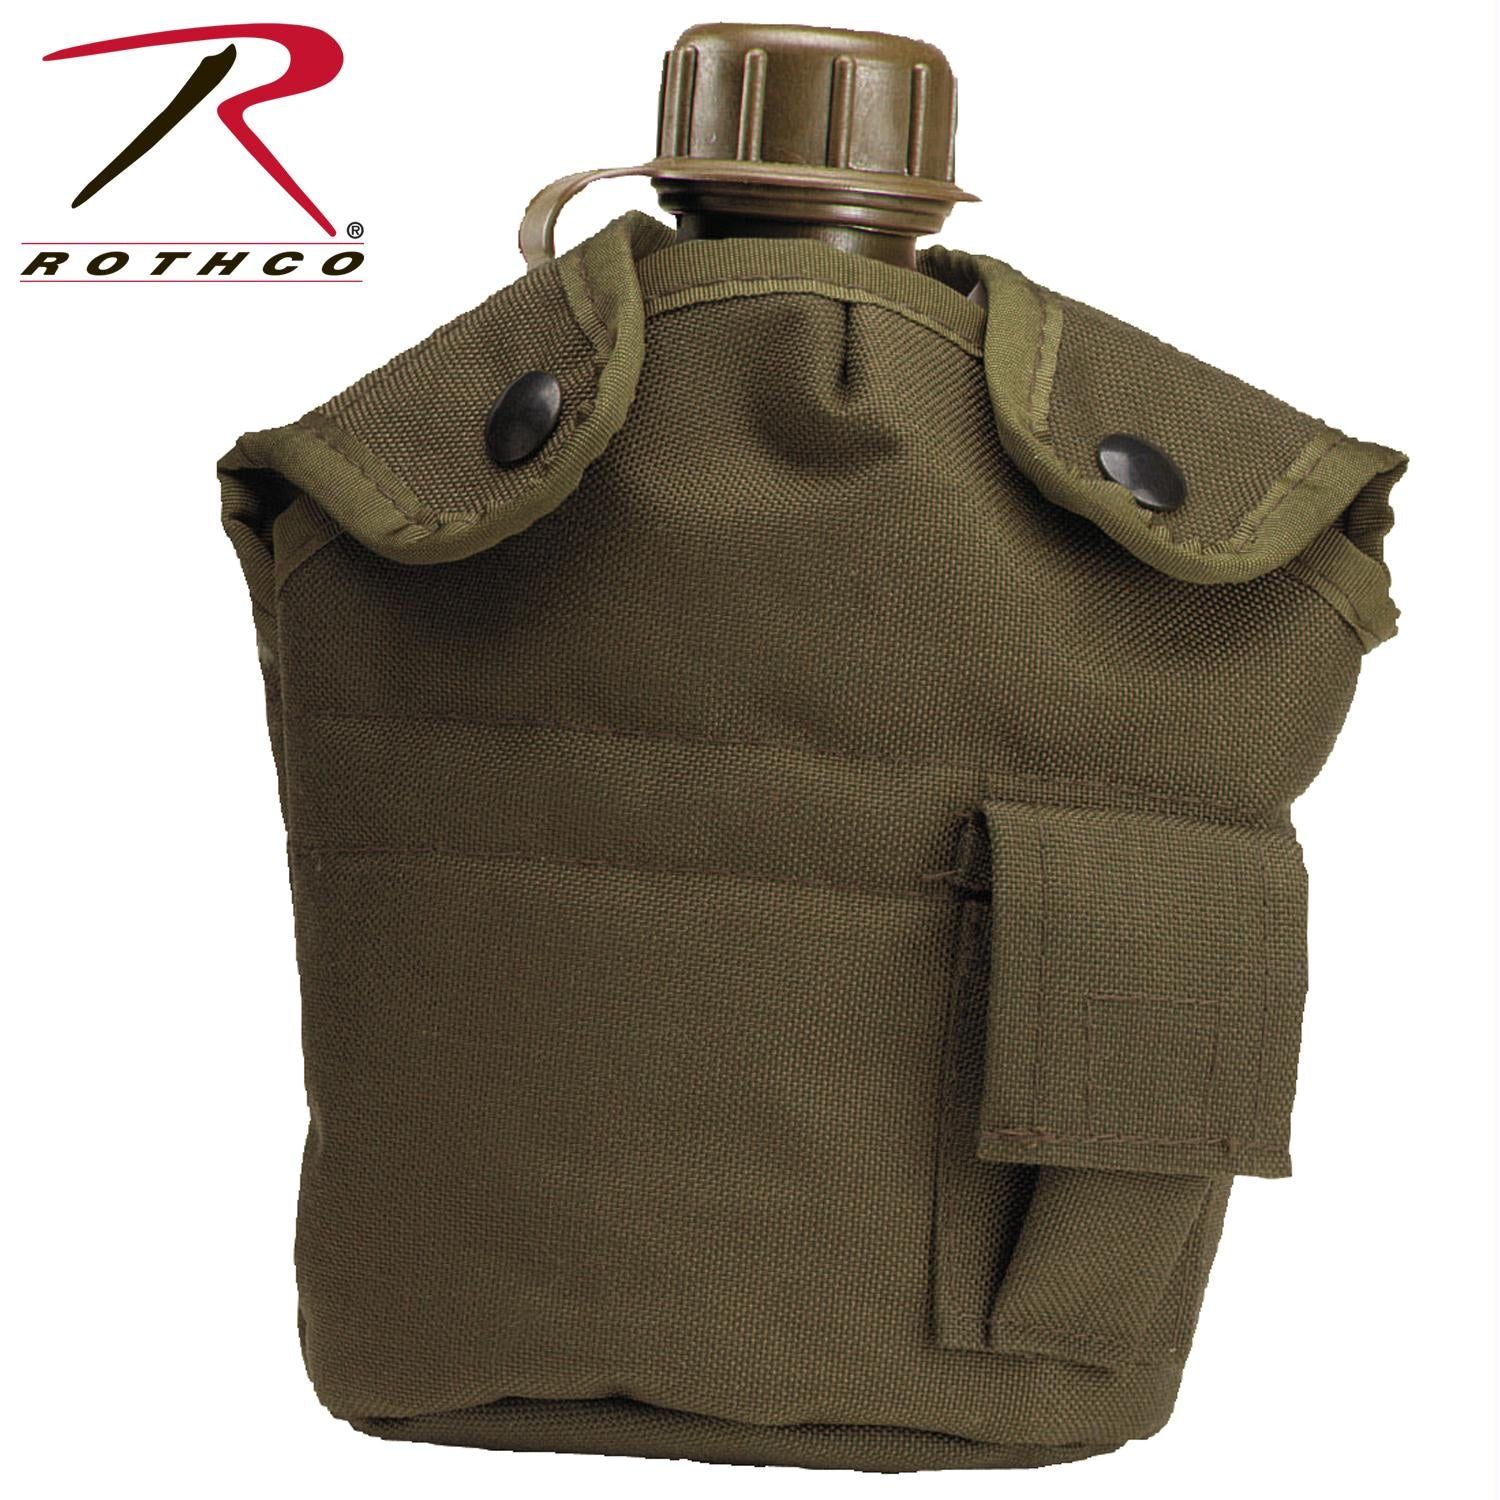 Rothco G.I. Type Enhanced Nylon 1qt. Canteen Cover - Olive Drab